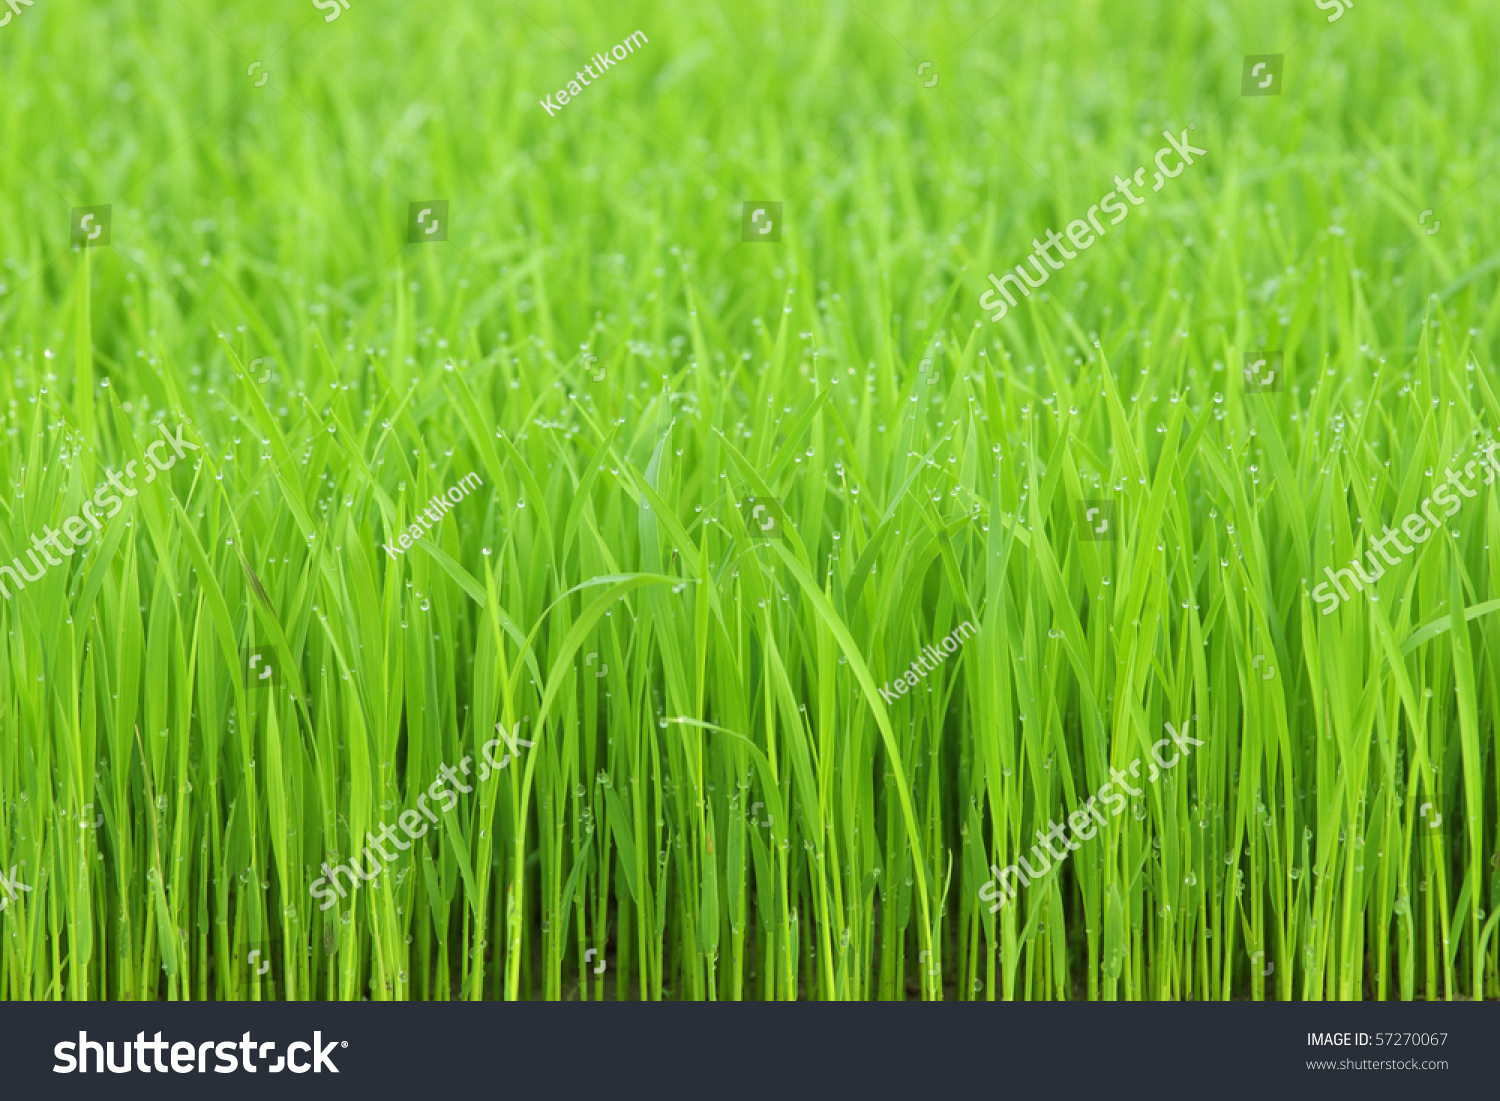 green grass morning dew wallpaper actually stock photo (download now